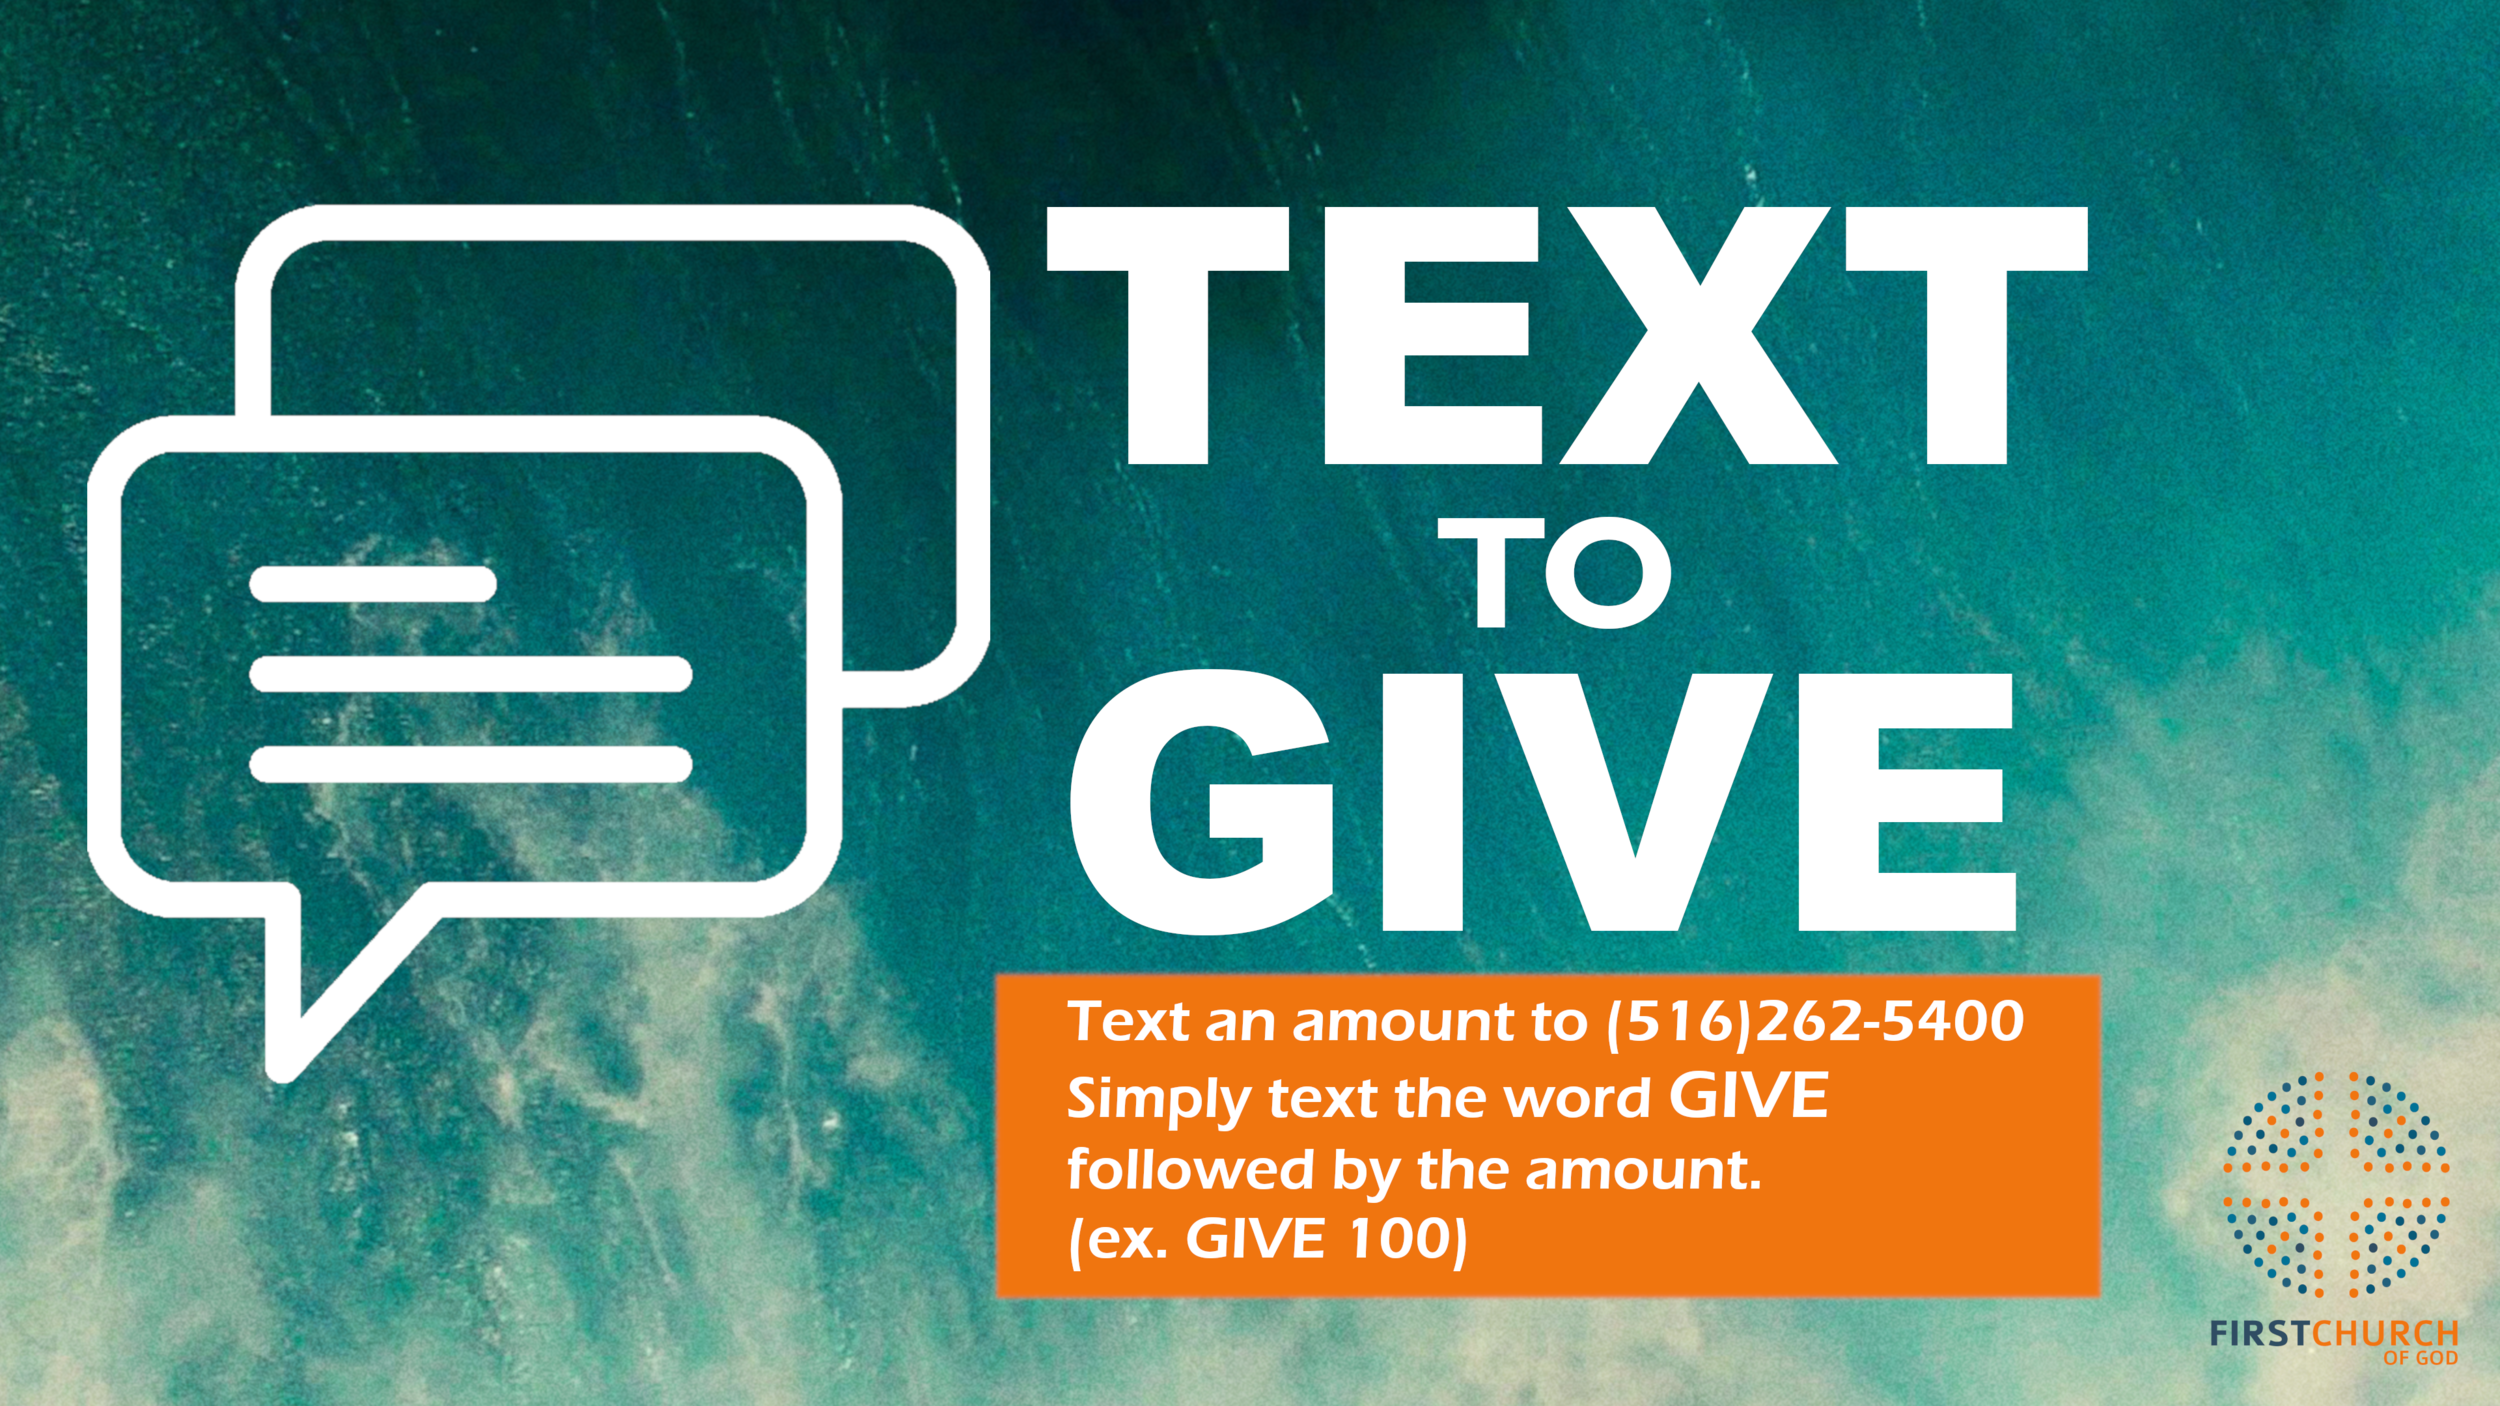 Text an amount to (516) 262-5400.Simply text the word GIVE followed by the amount. (ex. GIVE 100) - *First time givers will be prompted to provide their payment method via a secure web page.